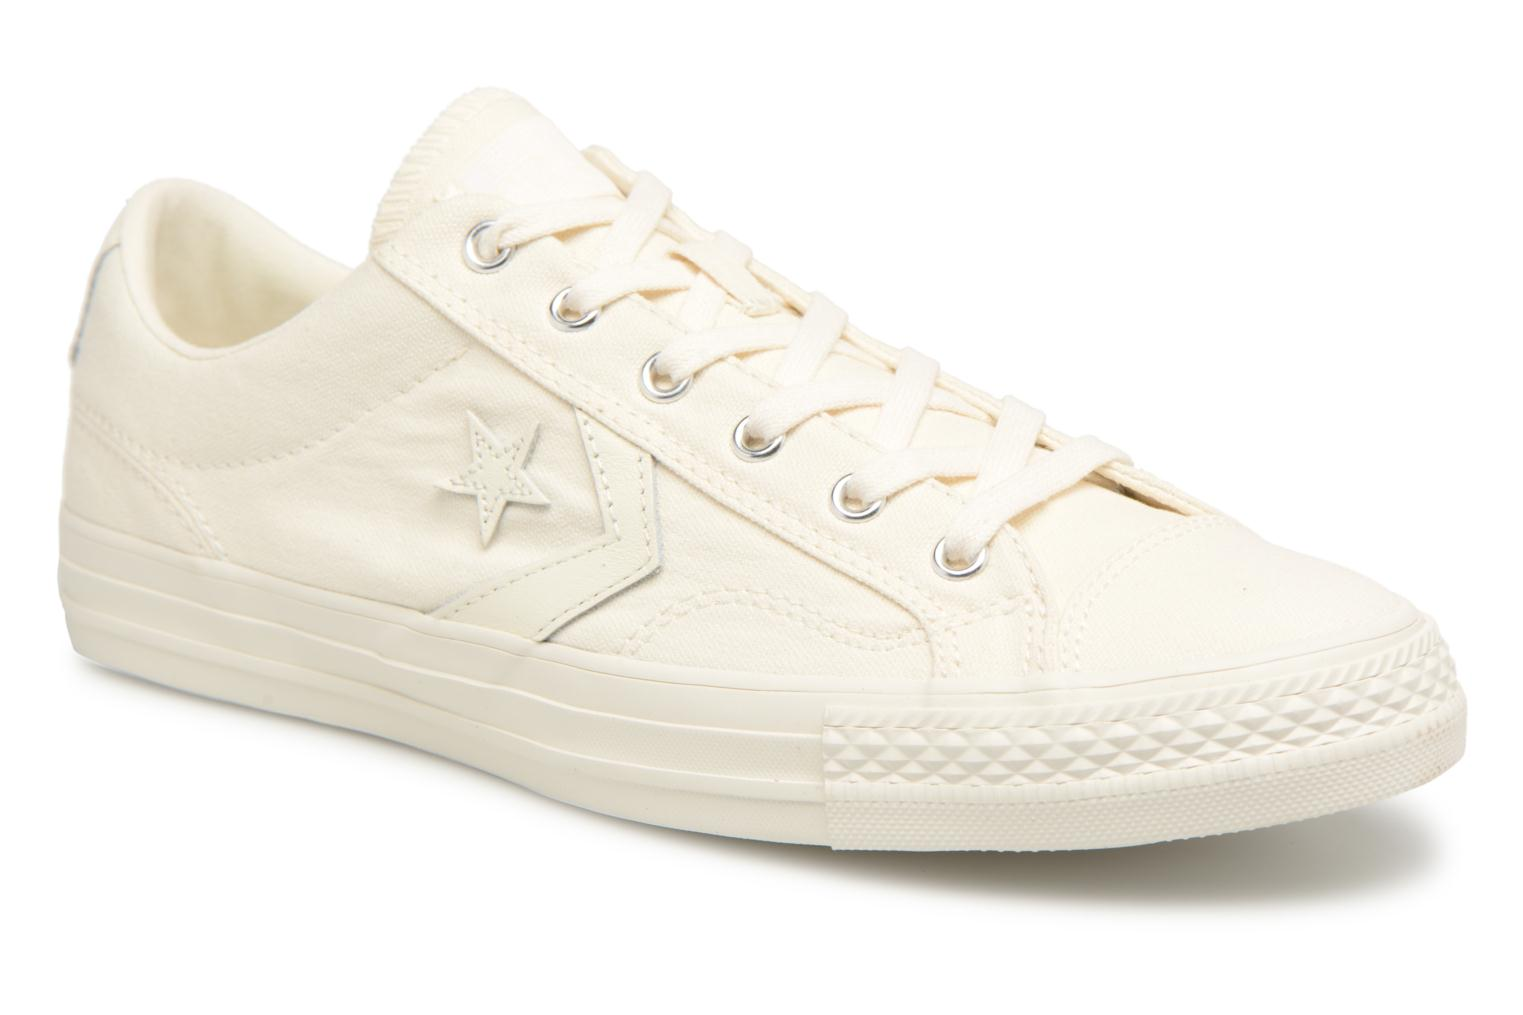 Sneakers Star Player Fashion Textile Ox by ConverseConverseWitPaar schoenen - Sneakers88875524097743Textiel